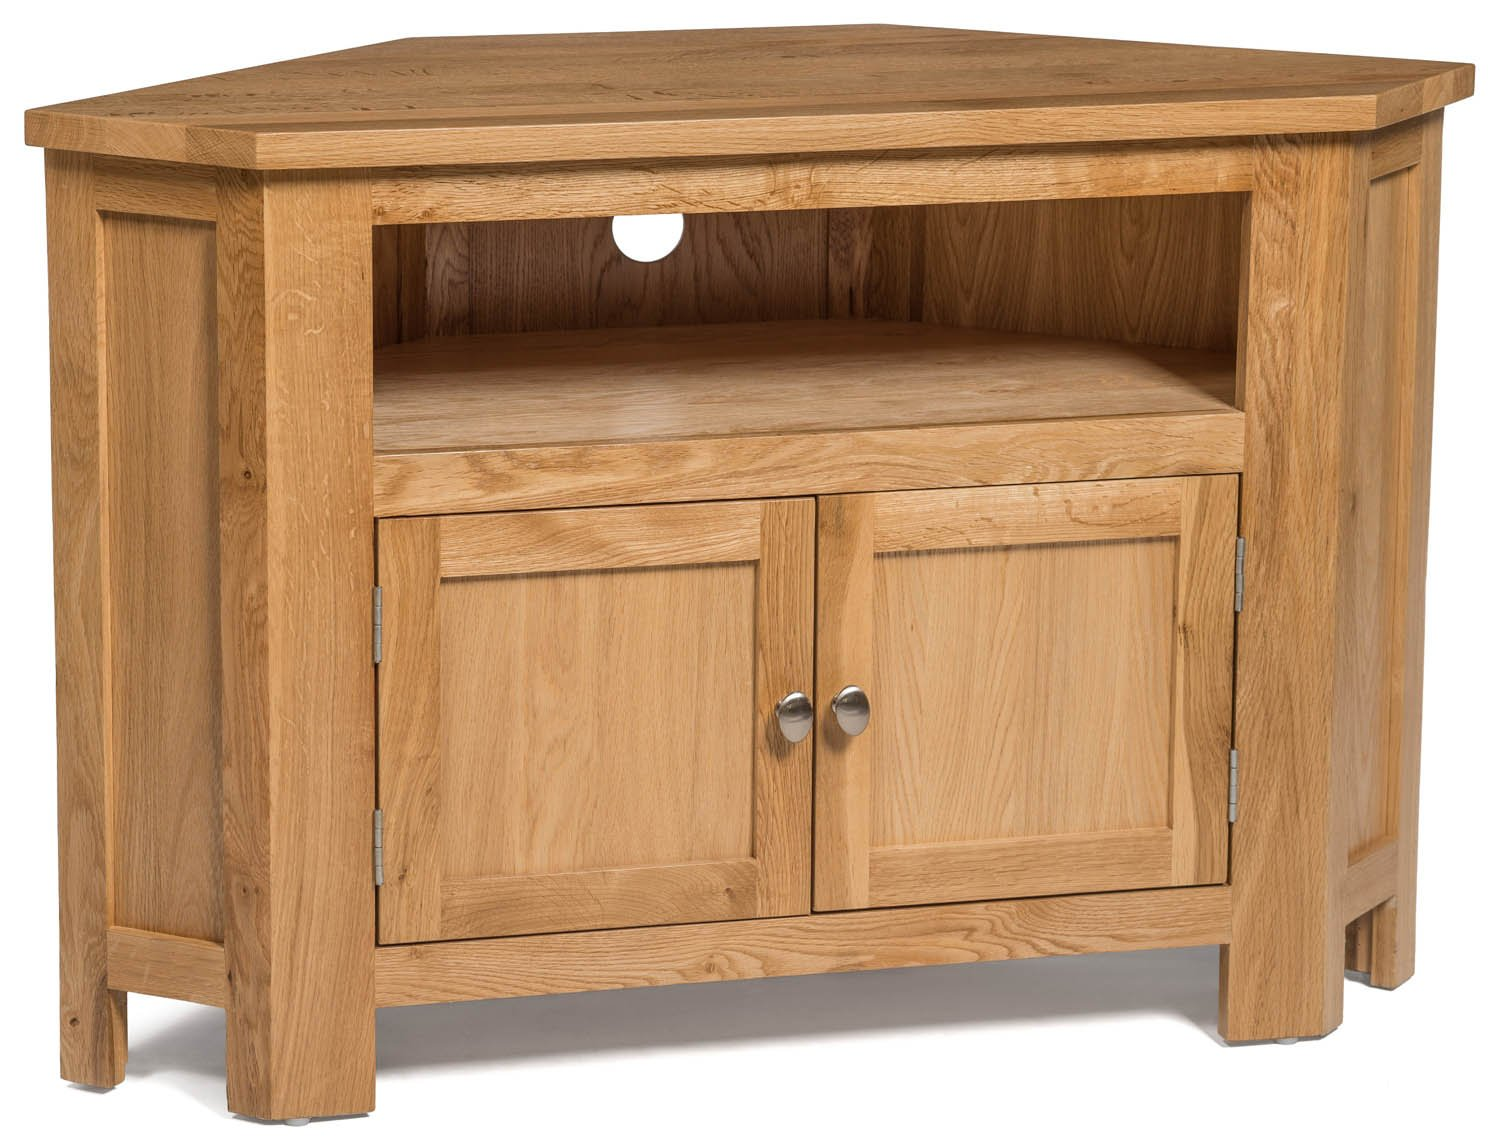 Charmant Waverly Oak 2 Door Corner TV Stand In Light Oak Finish | Media Cabinet |  Entertainment Table | Solid Wooden Doored Unit: Amazon.co.uk: Kitchen U0026 Home